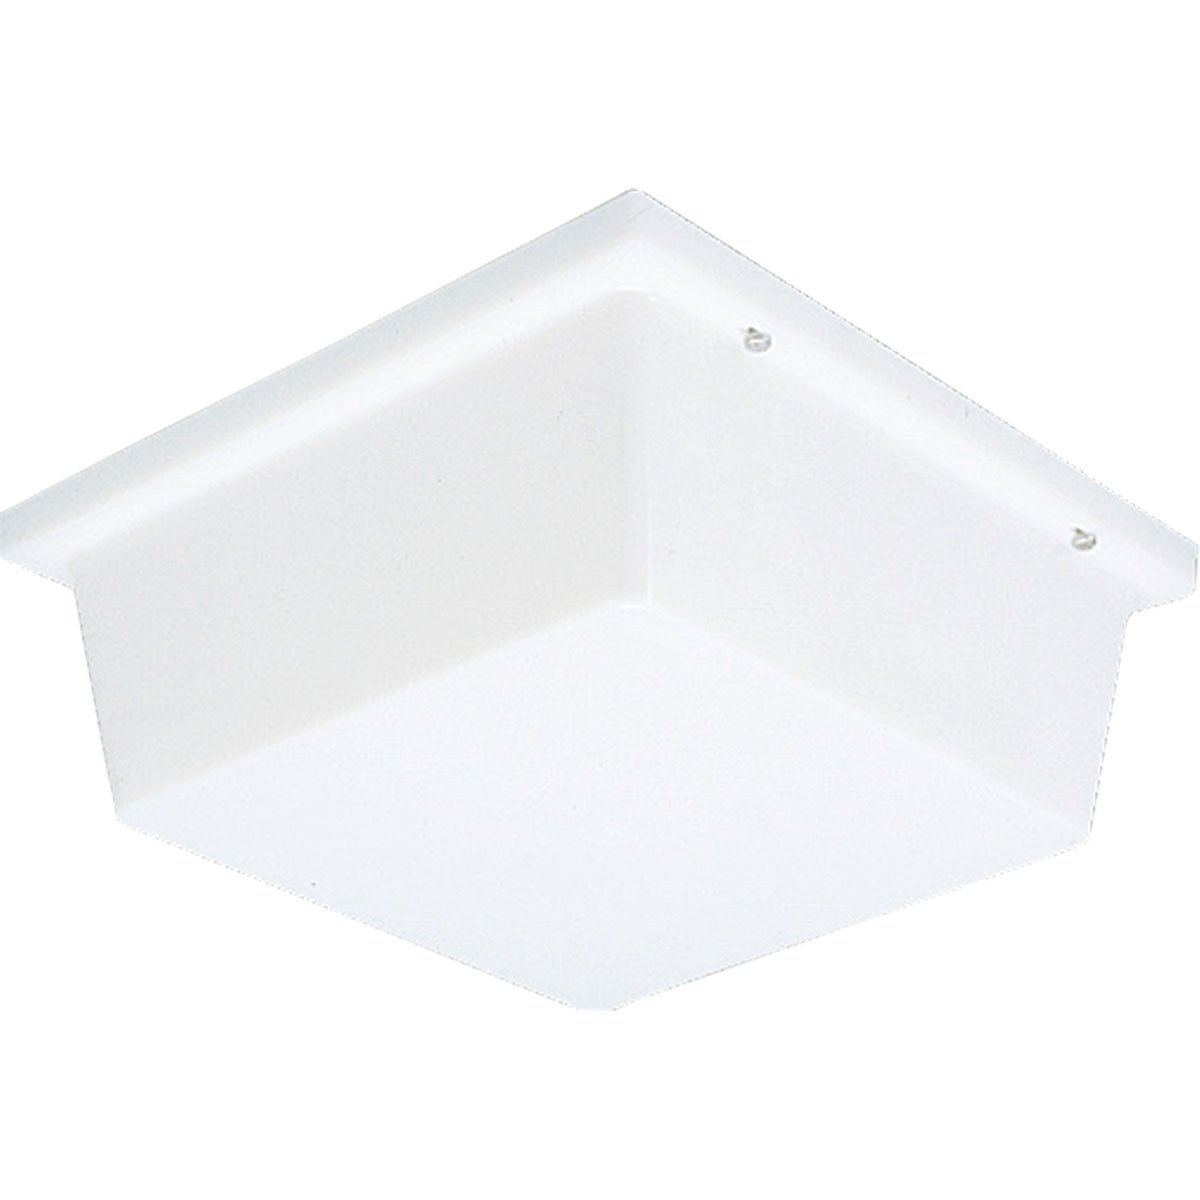 Progress Lighting P5791-60 Impact Resistant Fixture As Wall Or Ceiling Mounted with Polycarbonate Diffuser, White by Progress Lighting (Image #1)